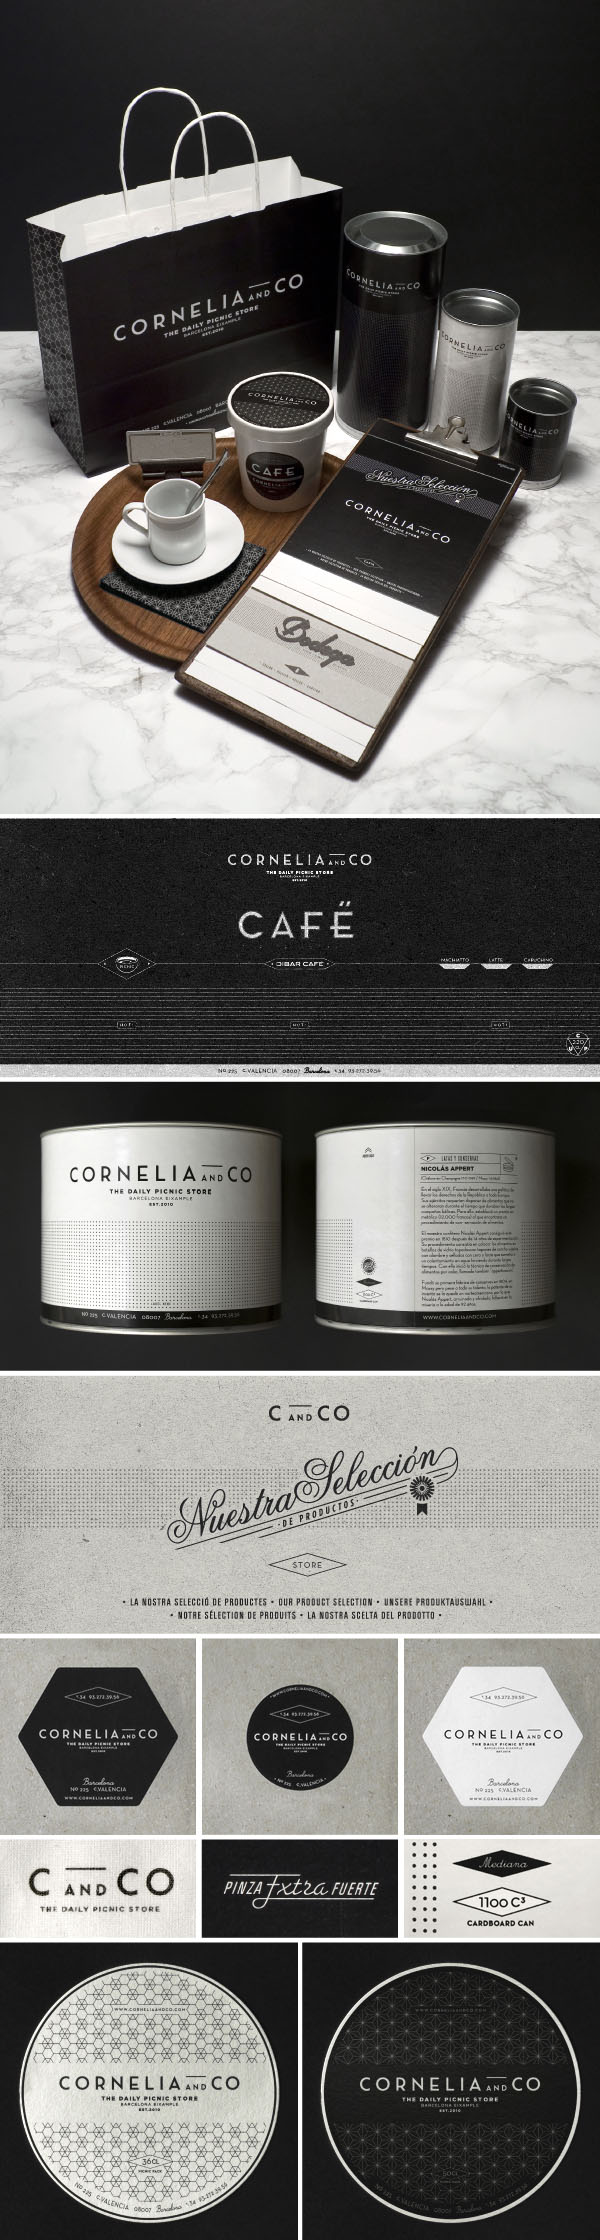 Cornelia and Co Brand and Package Design by Oriol Gil